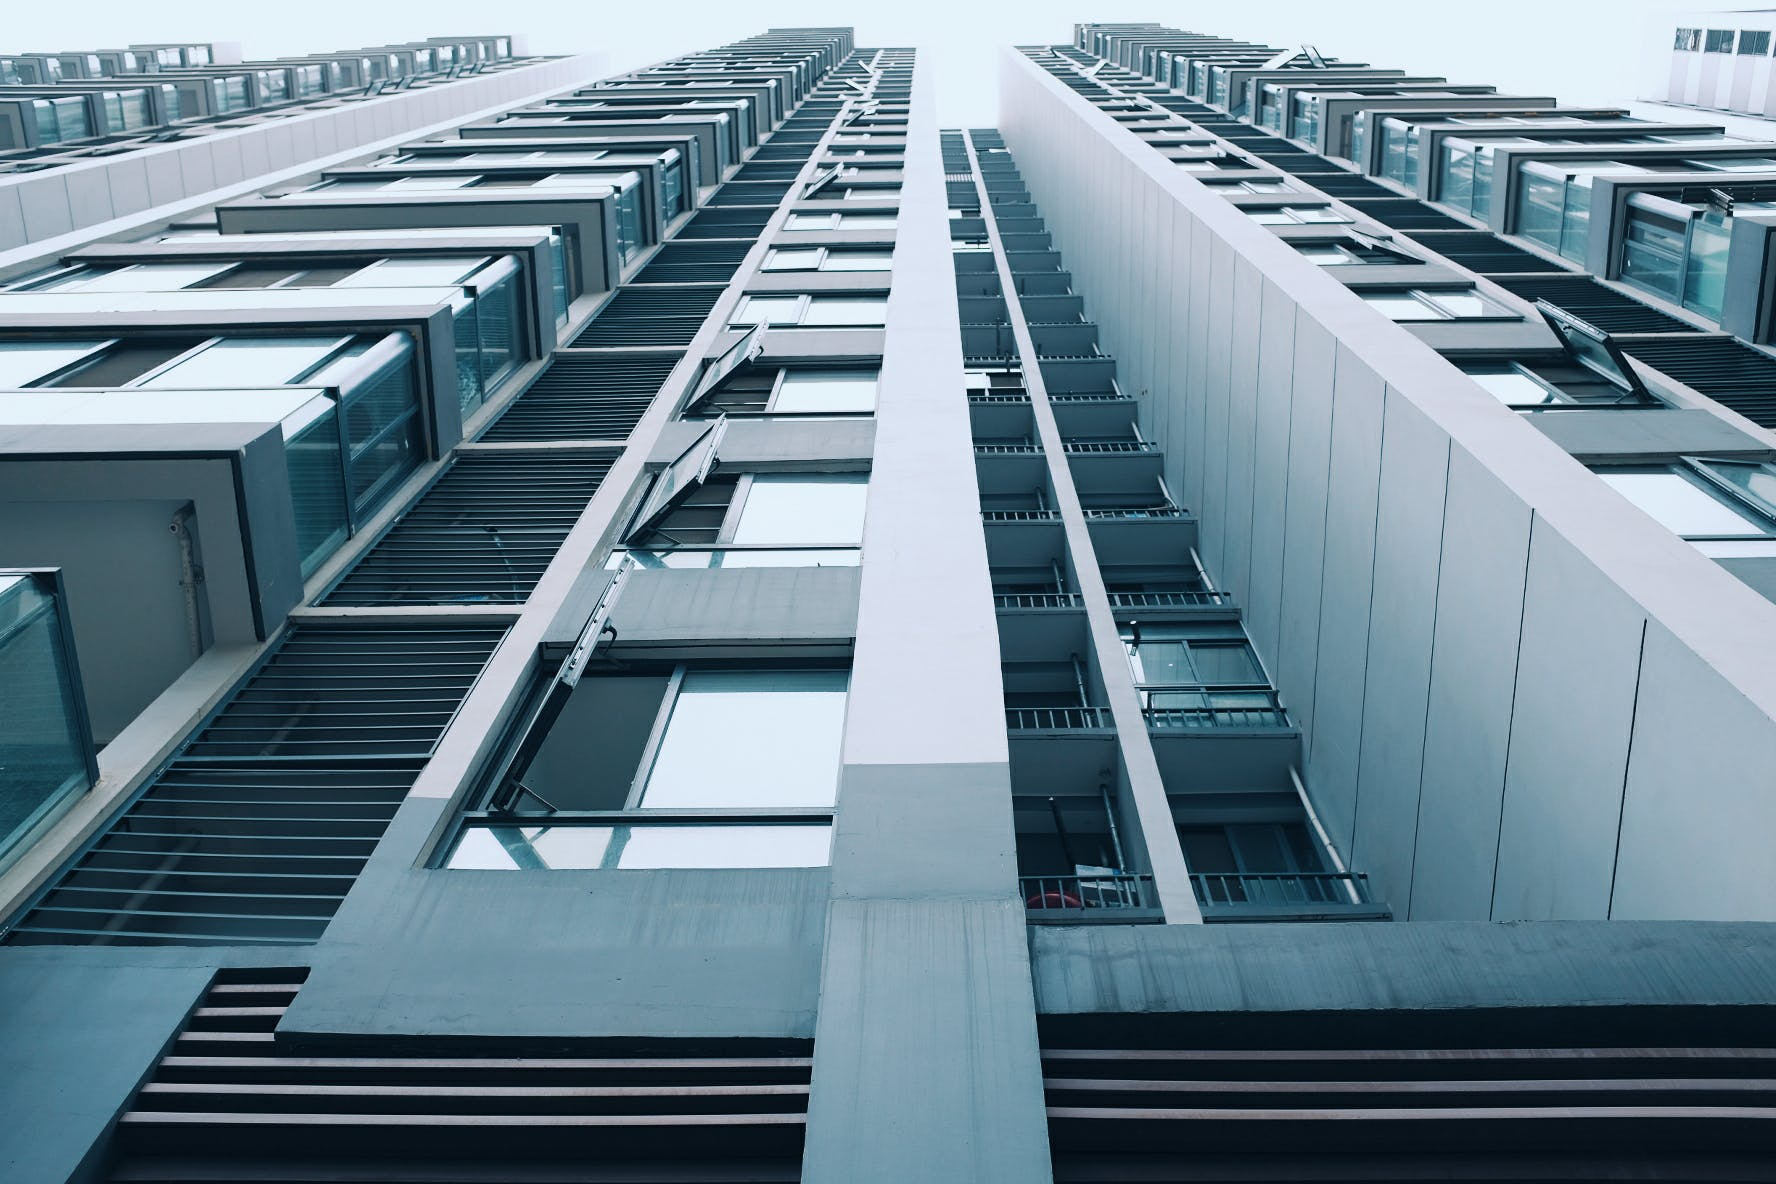 White and Black High-rise Building